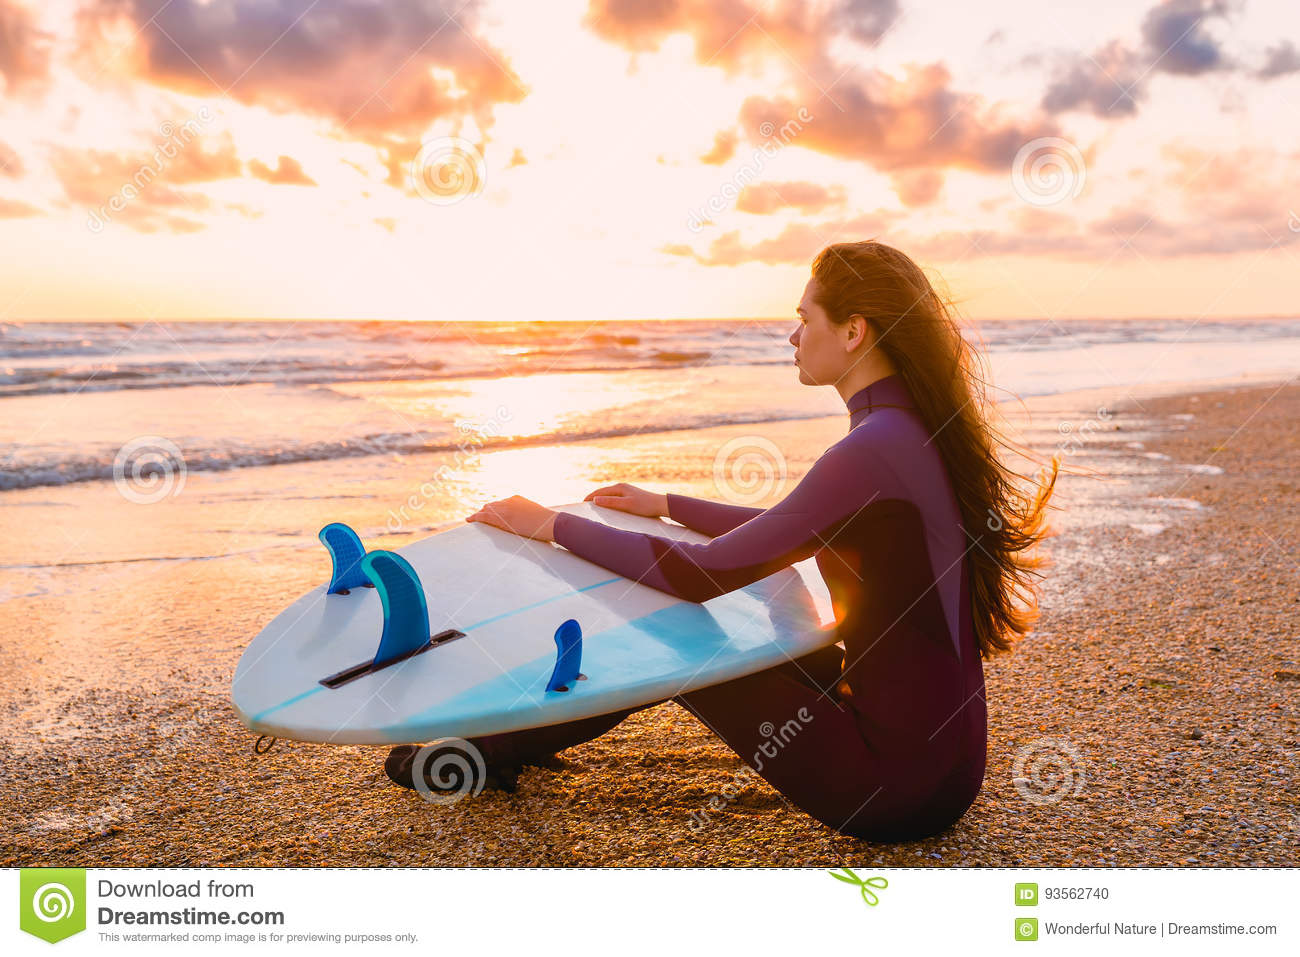 Young beautiful woman is sitting on the beach. Surf girl with surfboard on beach at sunset or sunrise. Surfer and ocean